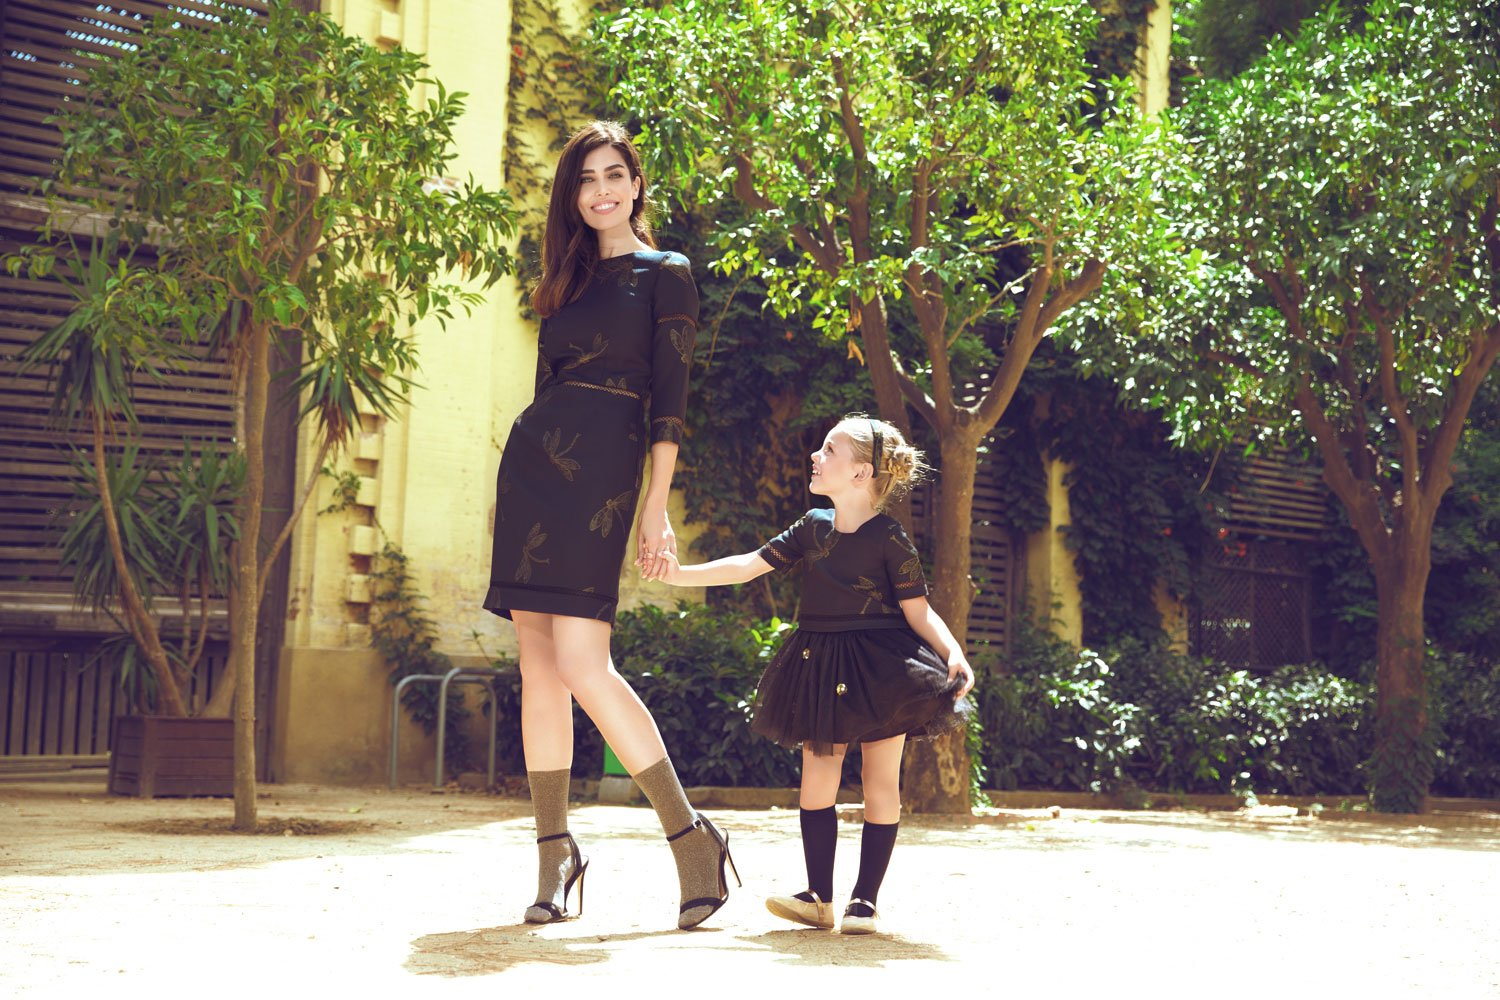 Mommy and me dress, Mommy and me outfit, matching dress, mother and daughter outfits, analogias official